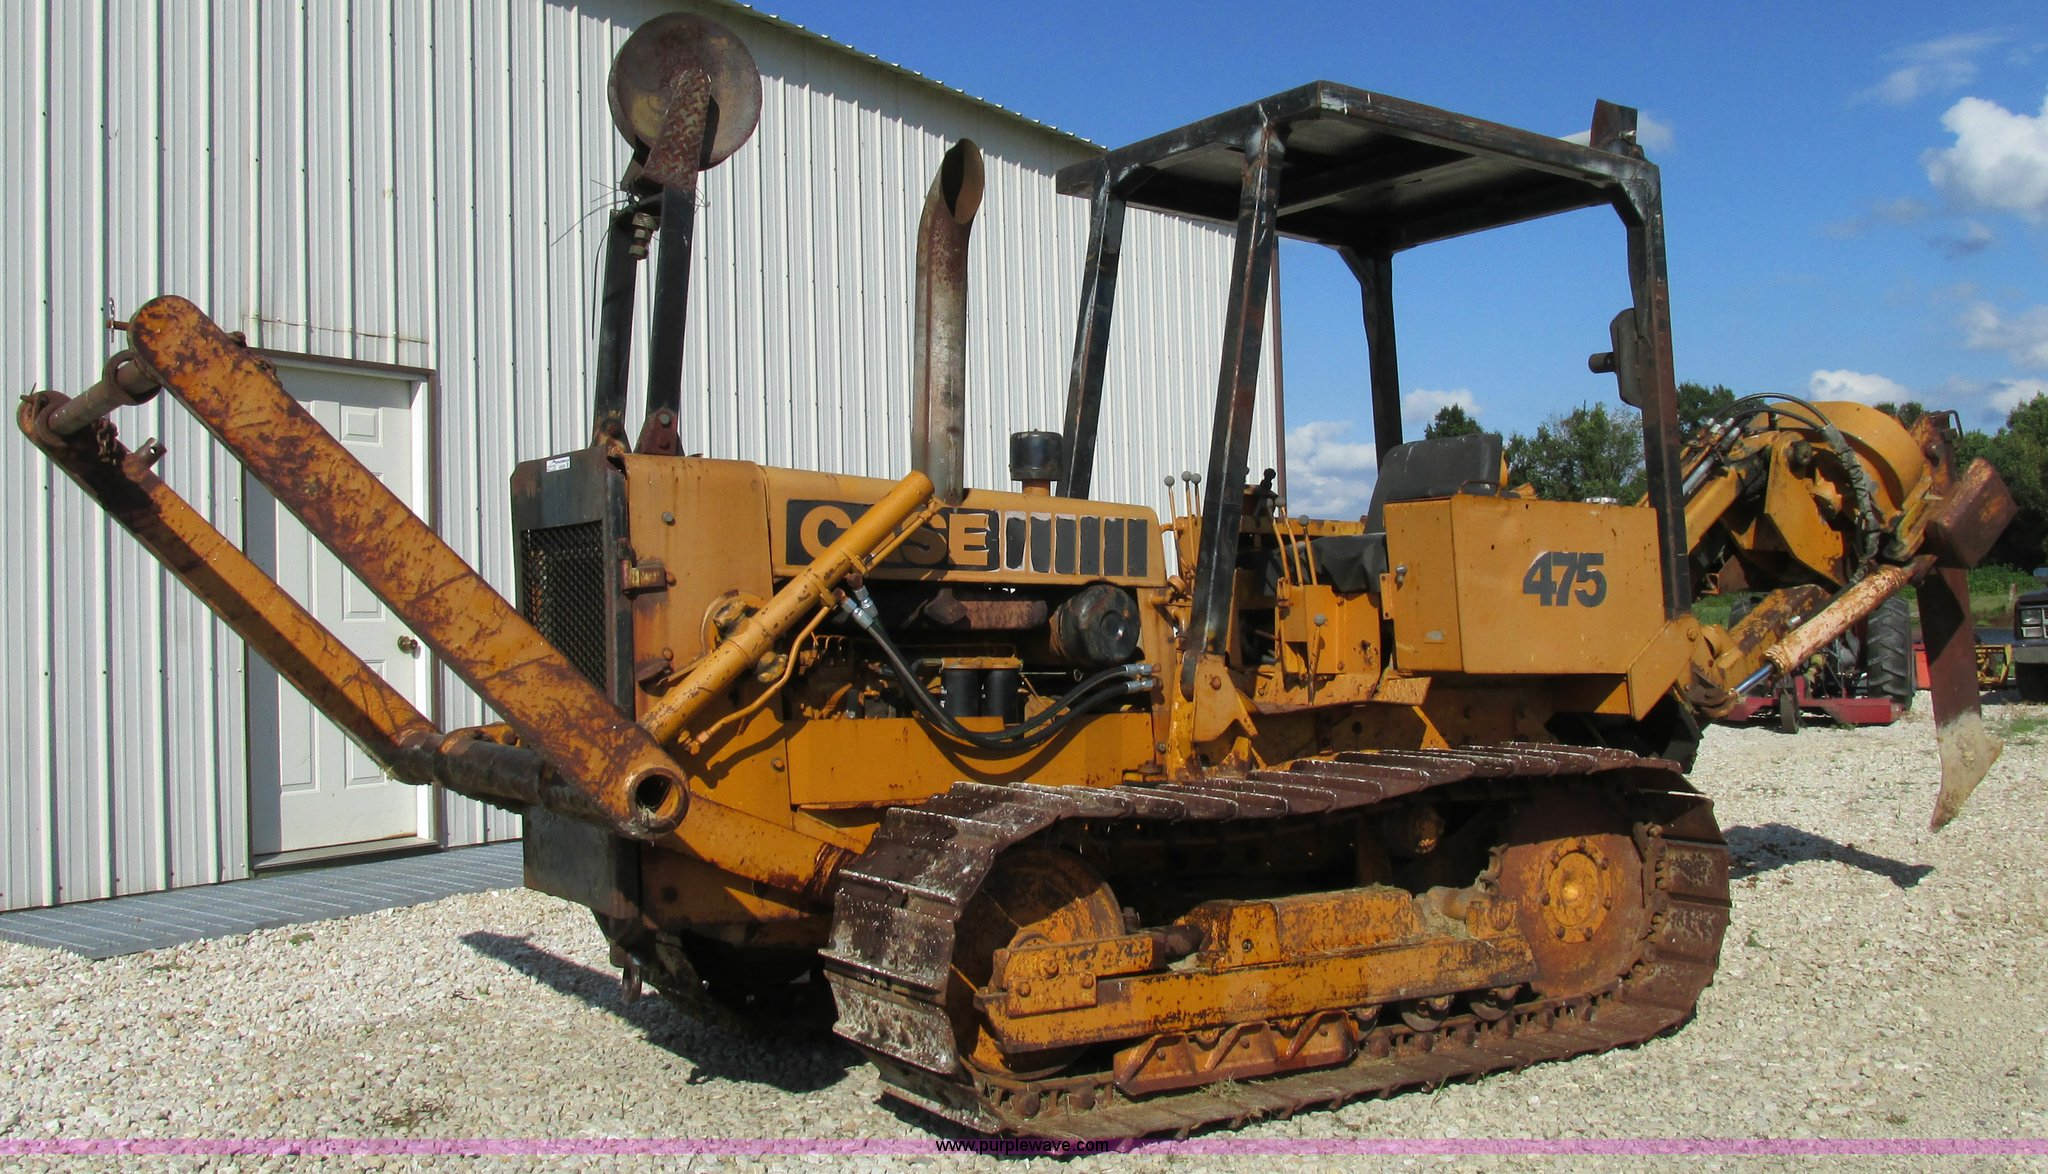 1972 Case 475 vibratory cable plow | Item AW9976 | SOLD! Sep